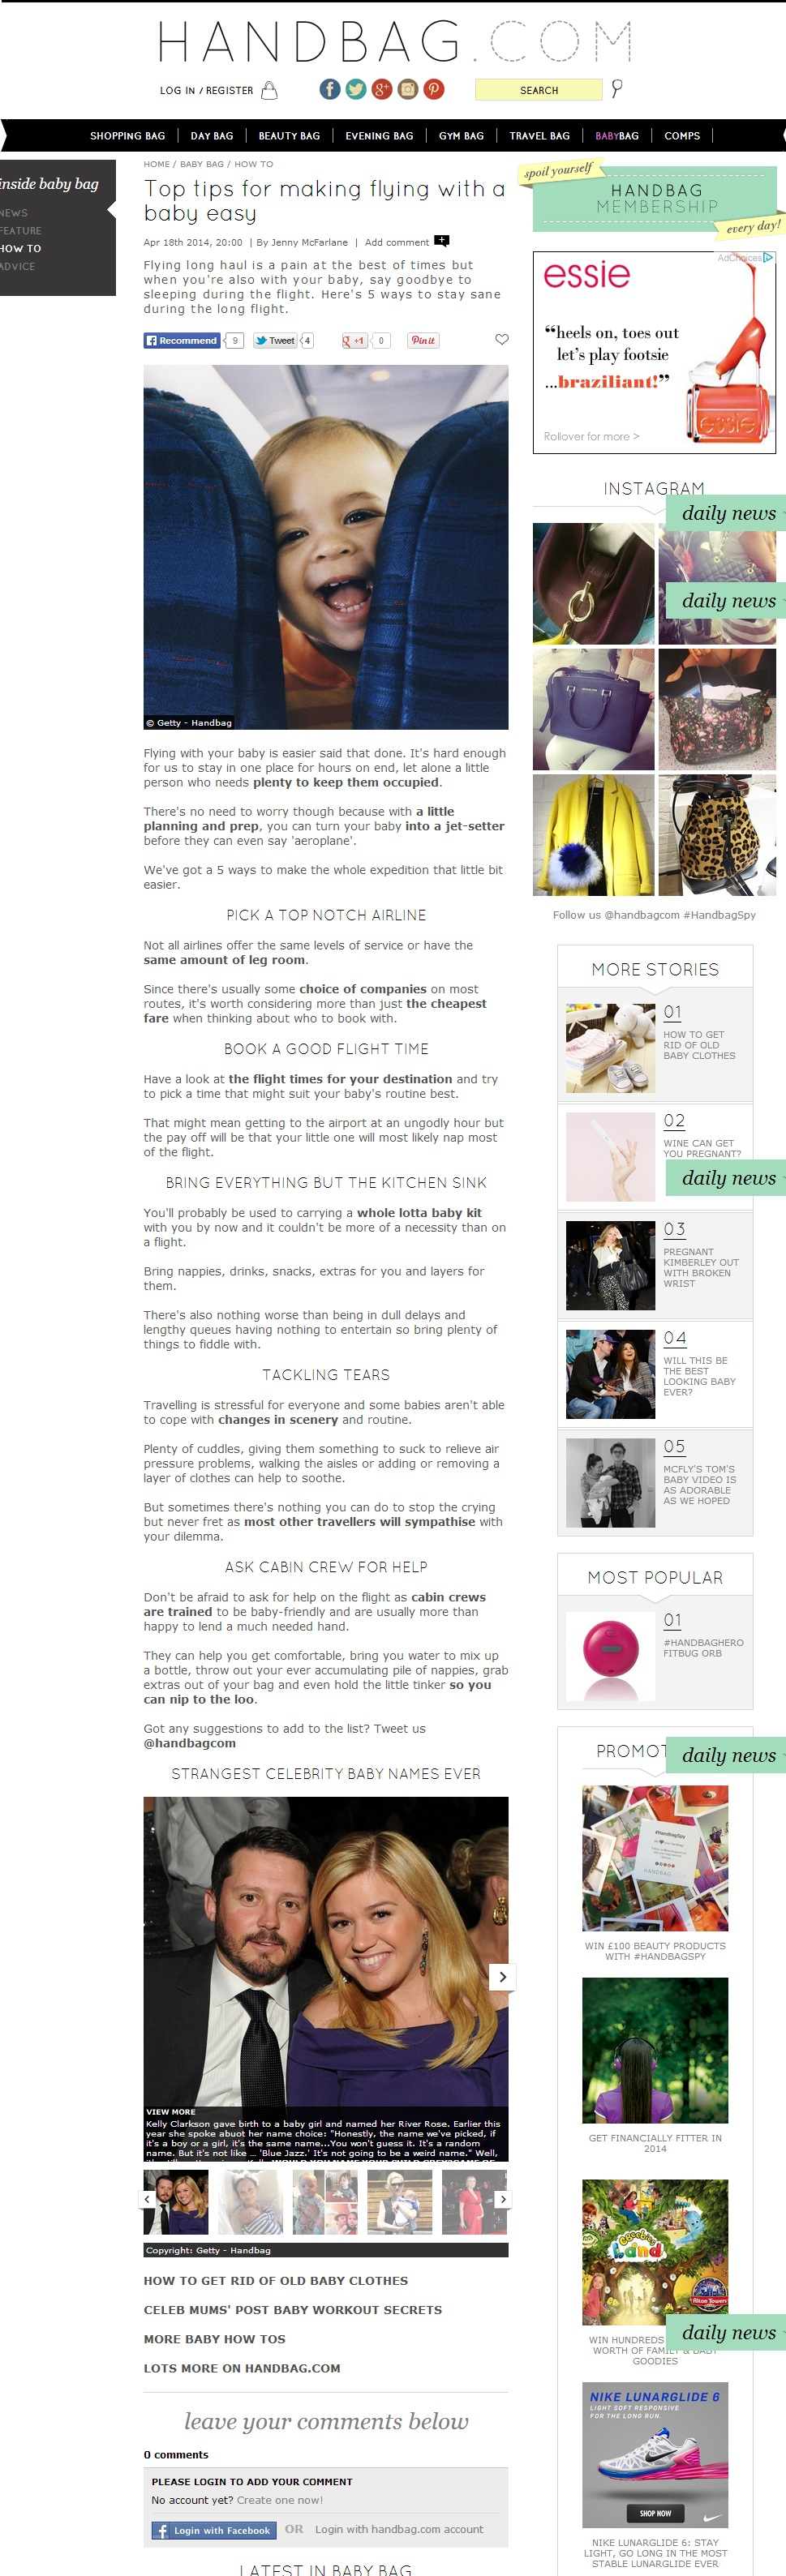 screencapture-www-handbag-com-baby-bag-how-to-a565089-top-tips-for-making-flying-with-a-baby-easy-html